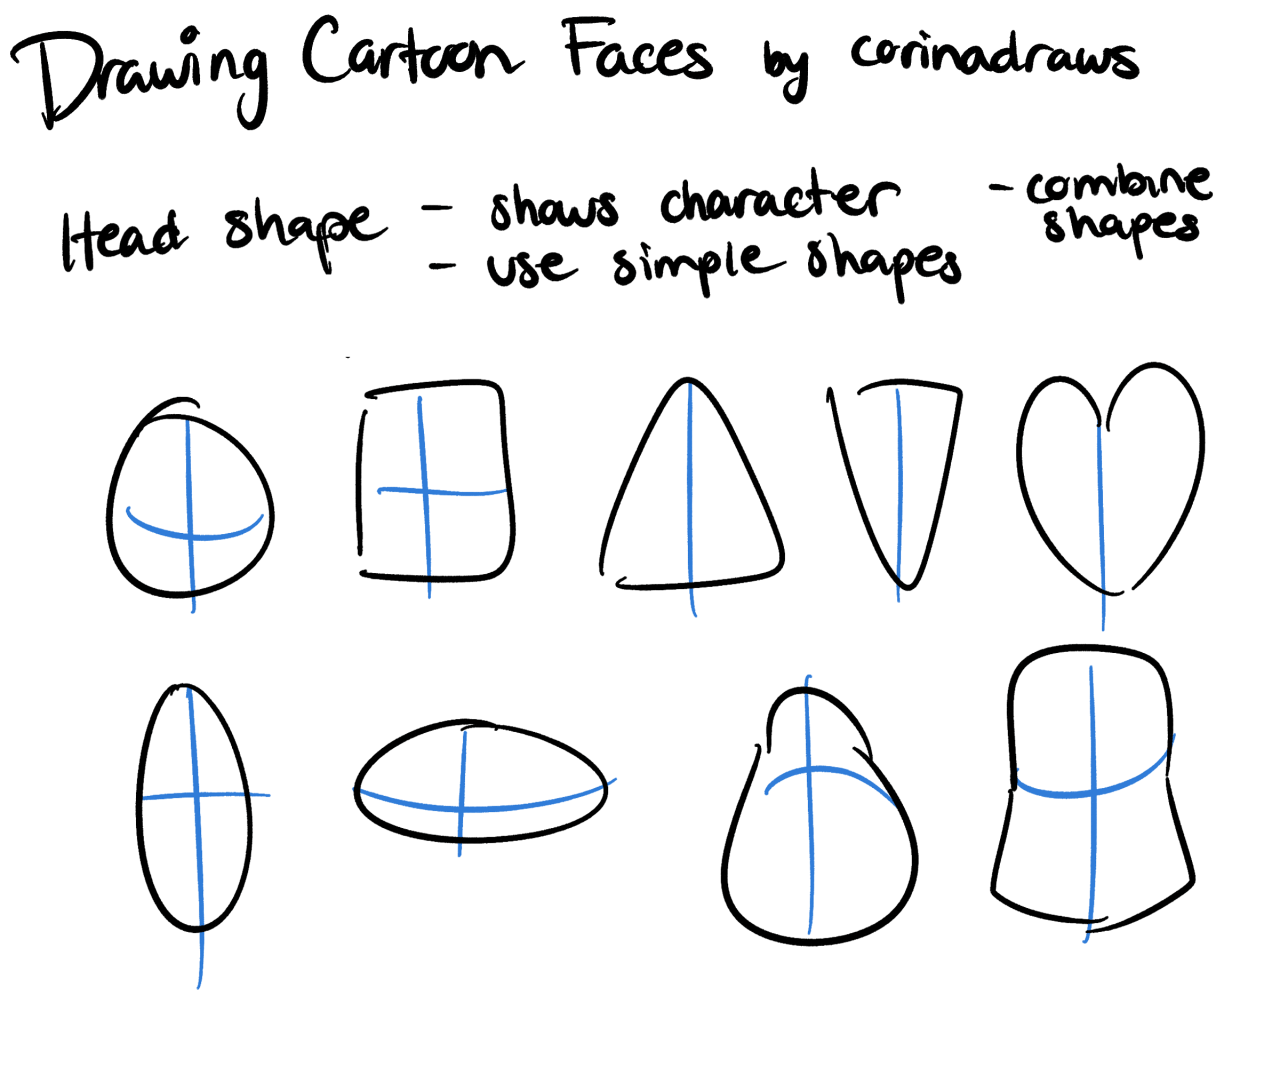 hight resolution of for example in most cases for cartoons the heroic or strong character has a square face shape and square jaw this feature represents the will power of